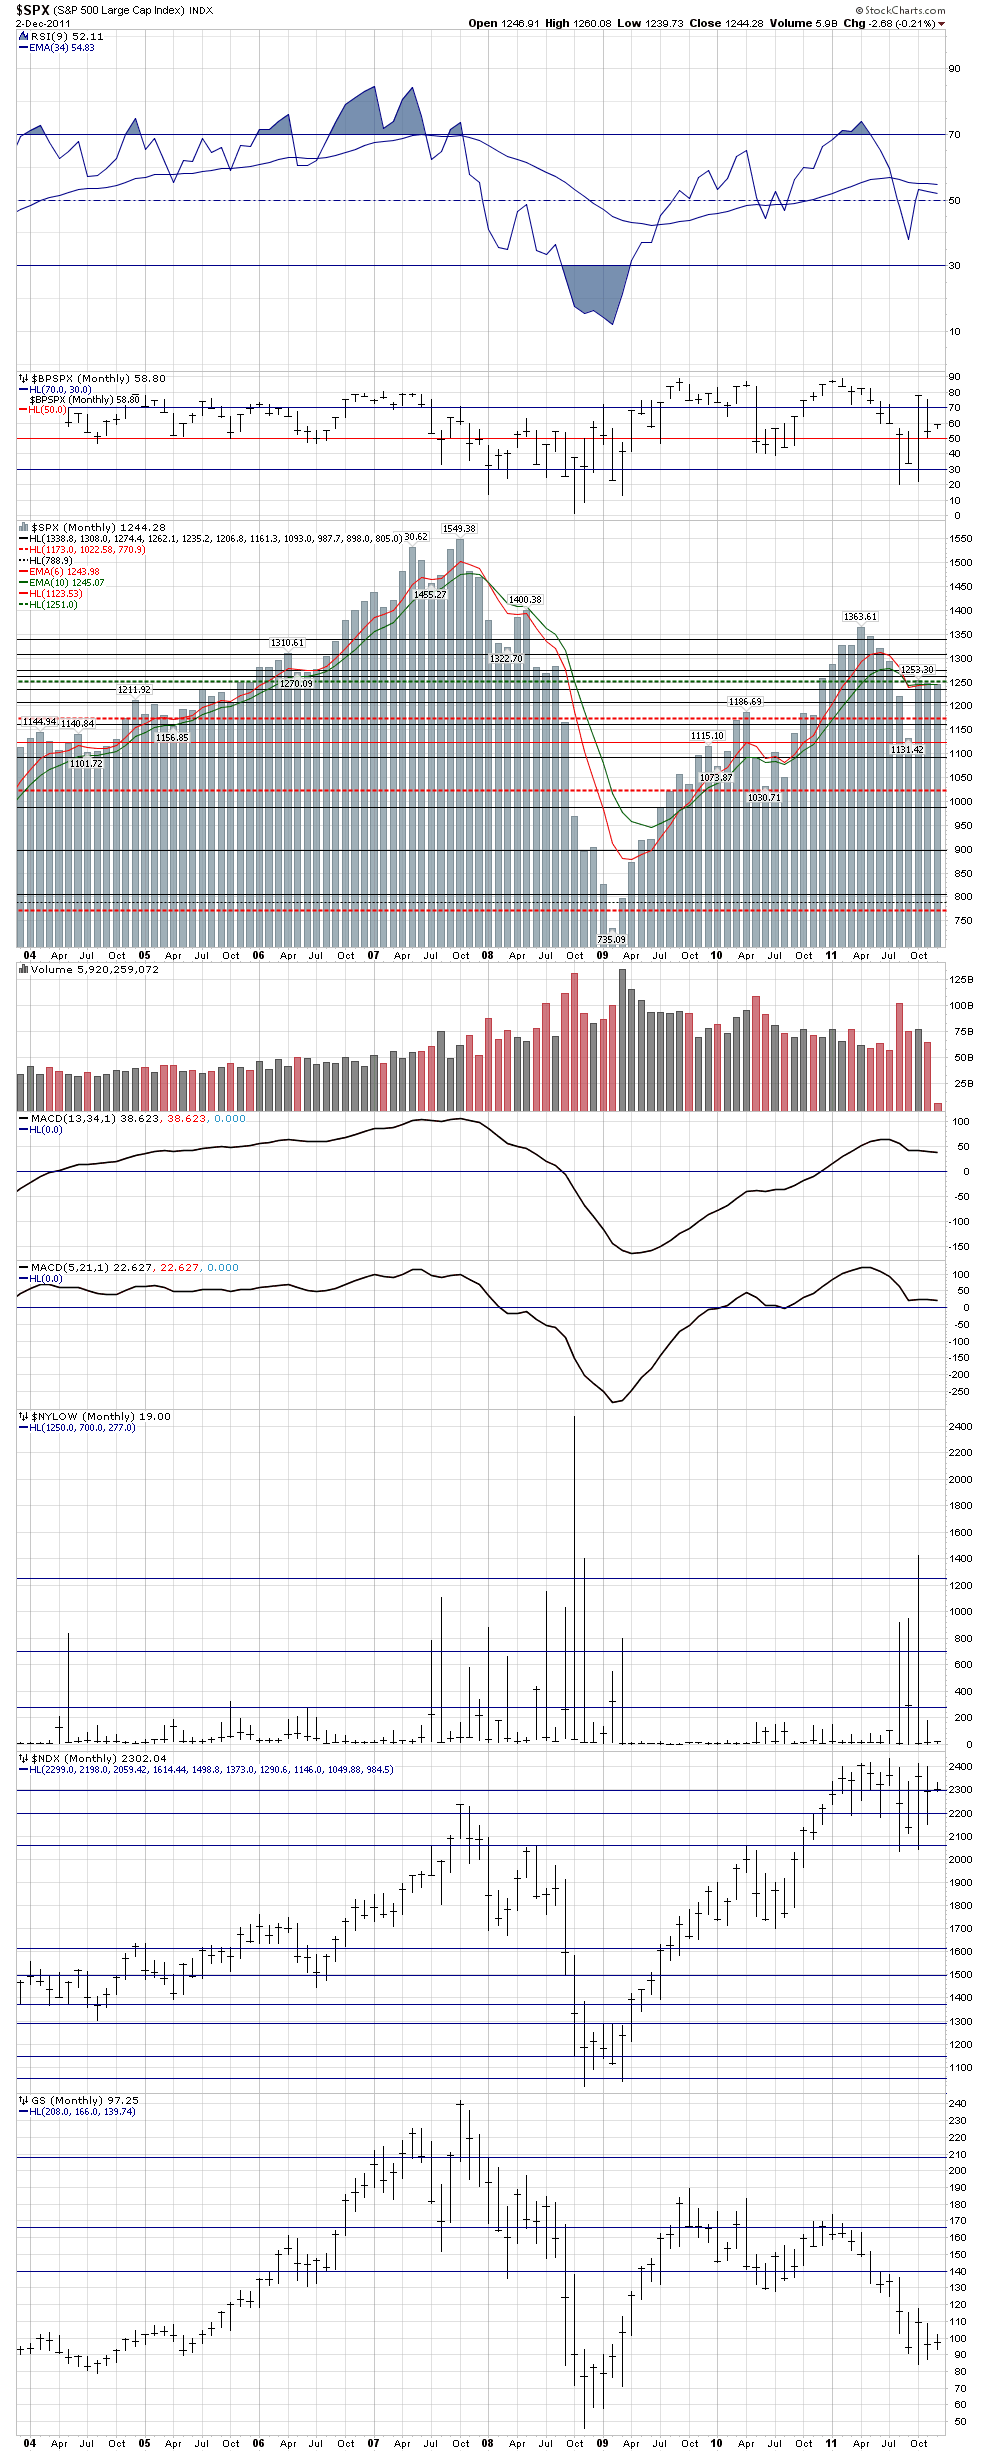 Name: SPX_monthly_since_2004_-_Dec_2,_2011_close.png, Views: 85, Size: 71.03 KB